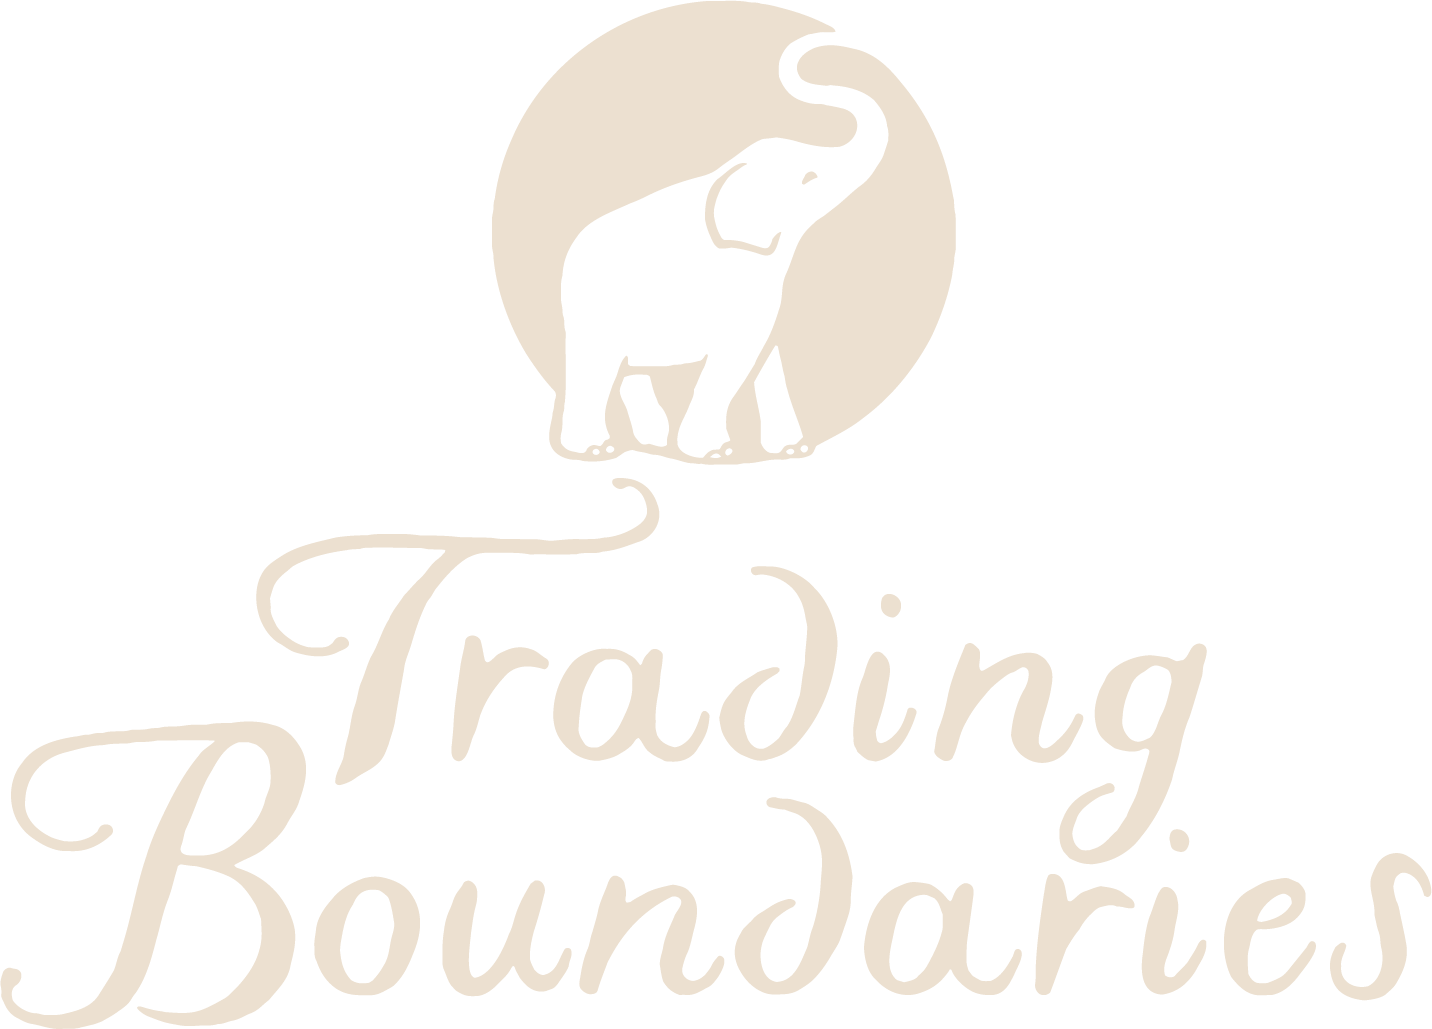 Trading Boundaries: The UKs most unique vintage furniture & handicraft destination